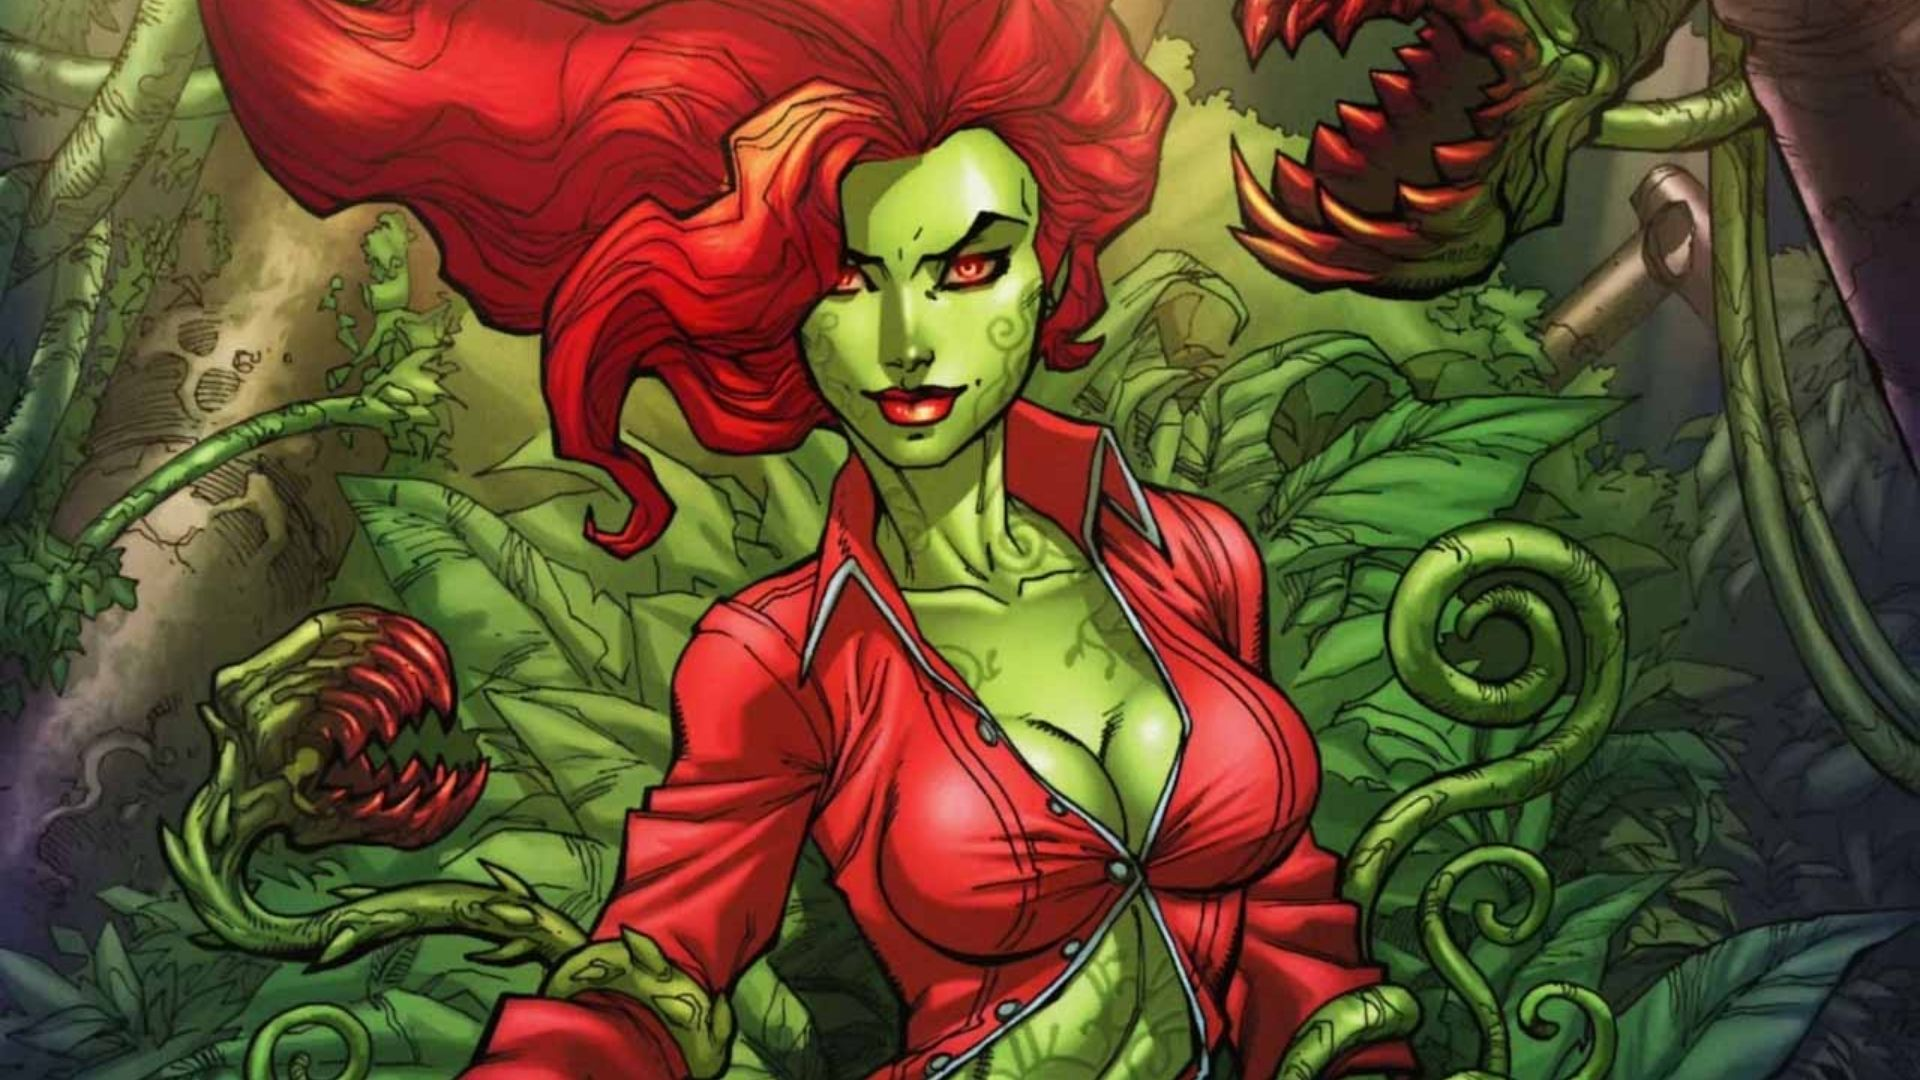 Poison Ivy Wallpapers, Pictures, Images